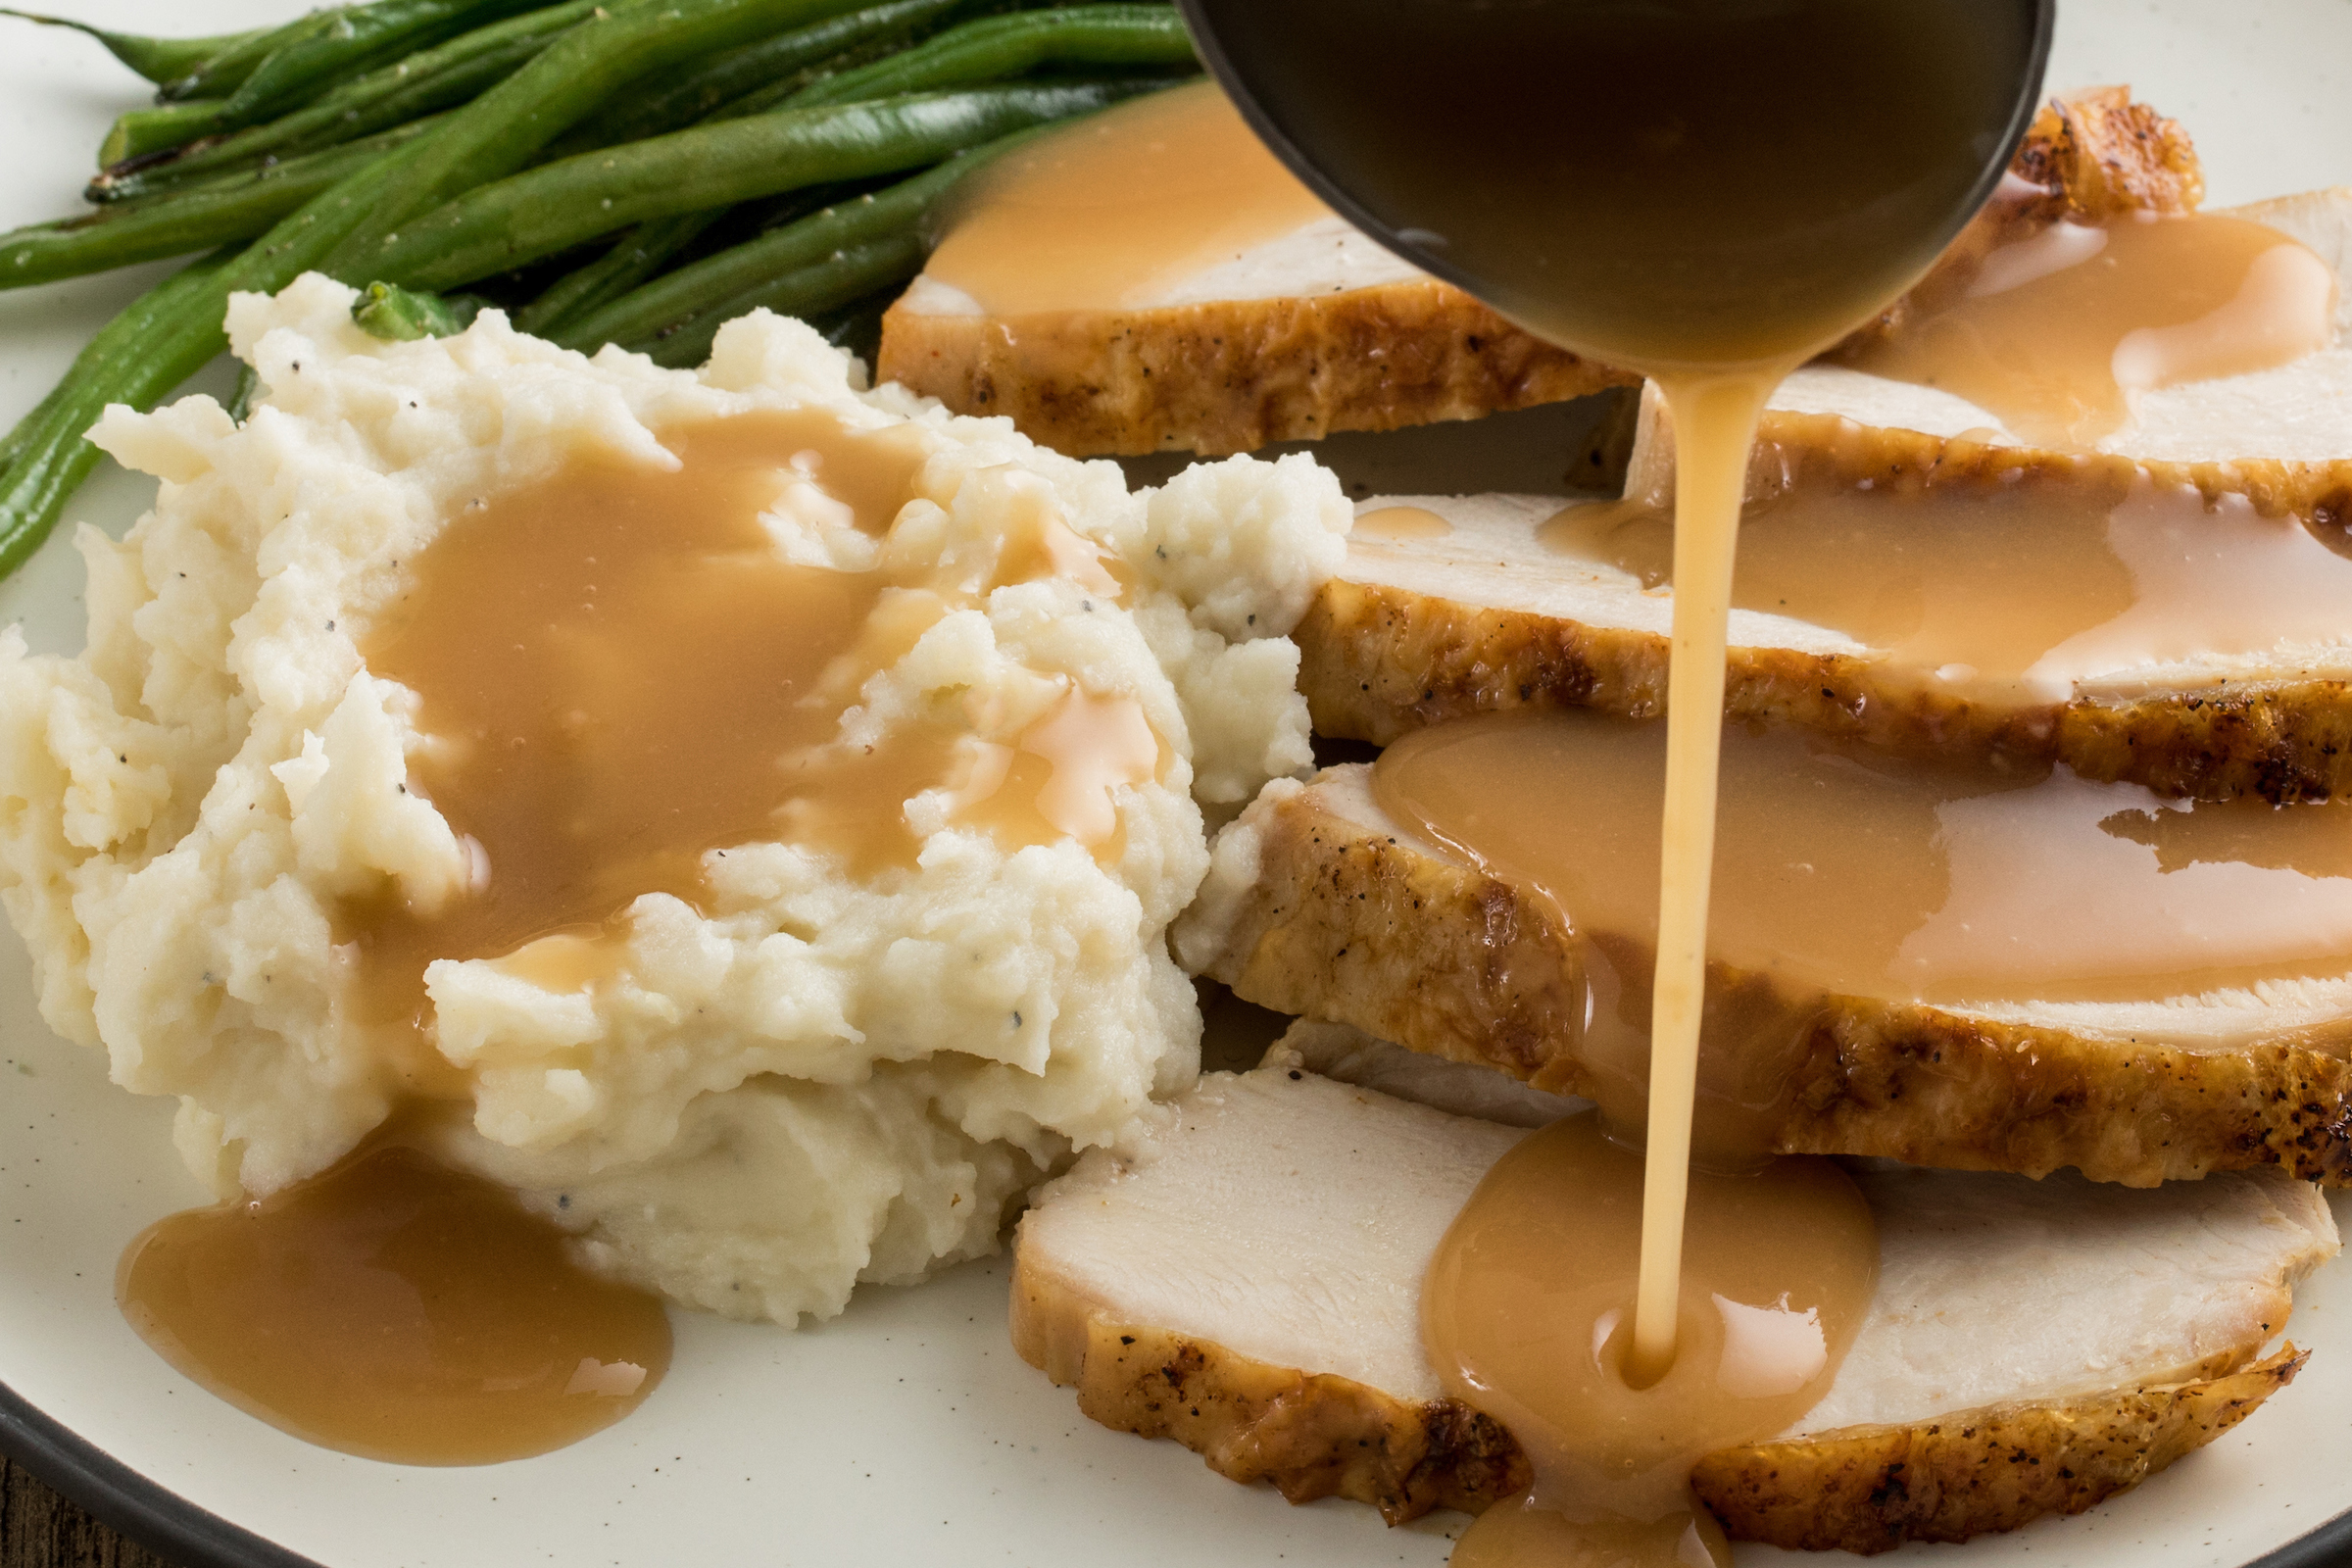 McCormick Turkey Gravy and Mashed Potatoes